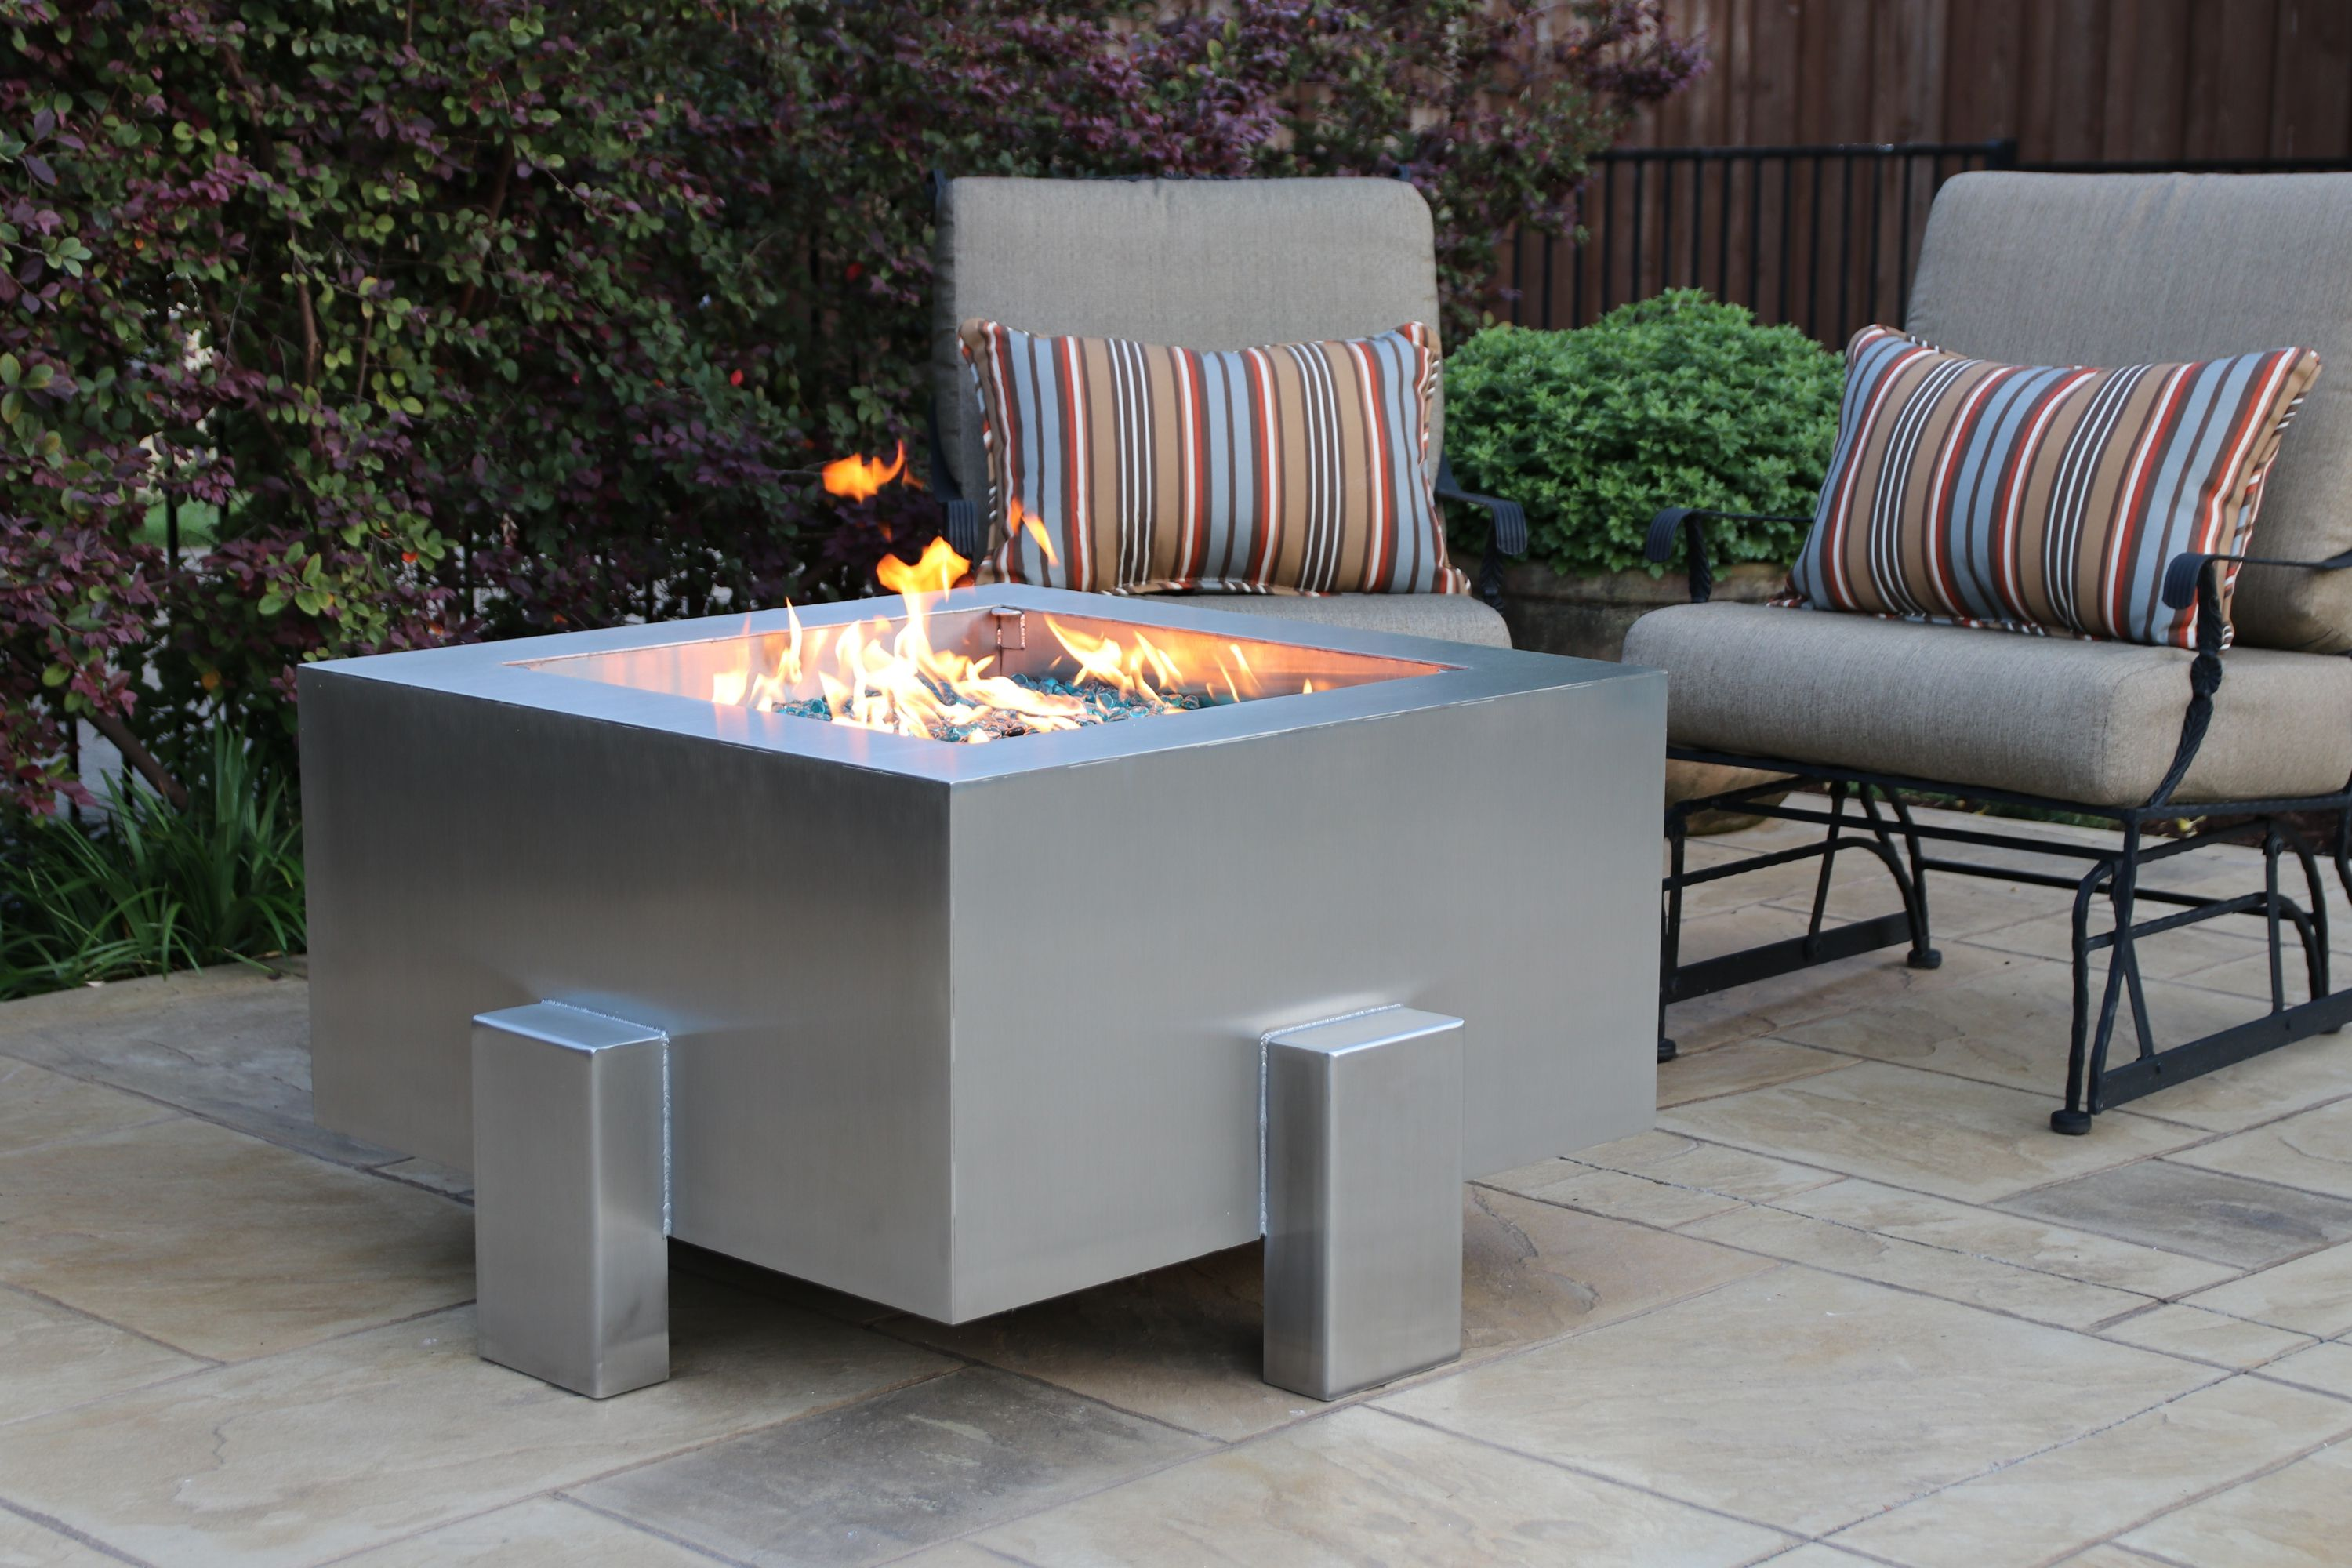 The New Legato Stainless Steel Fire Pit From Bentintoshape Net Features 11 Ga Stainless Steel Stainless Steel Fire Pit Electric Fire Pit Contemporary Fire Pit